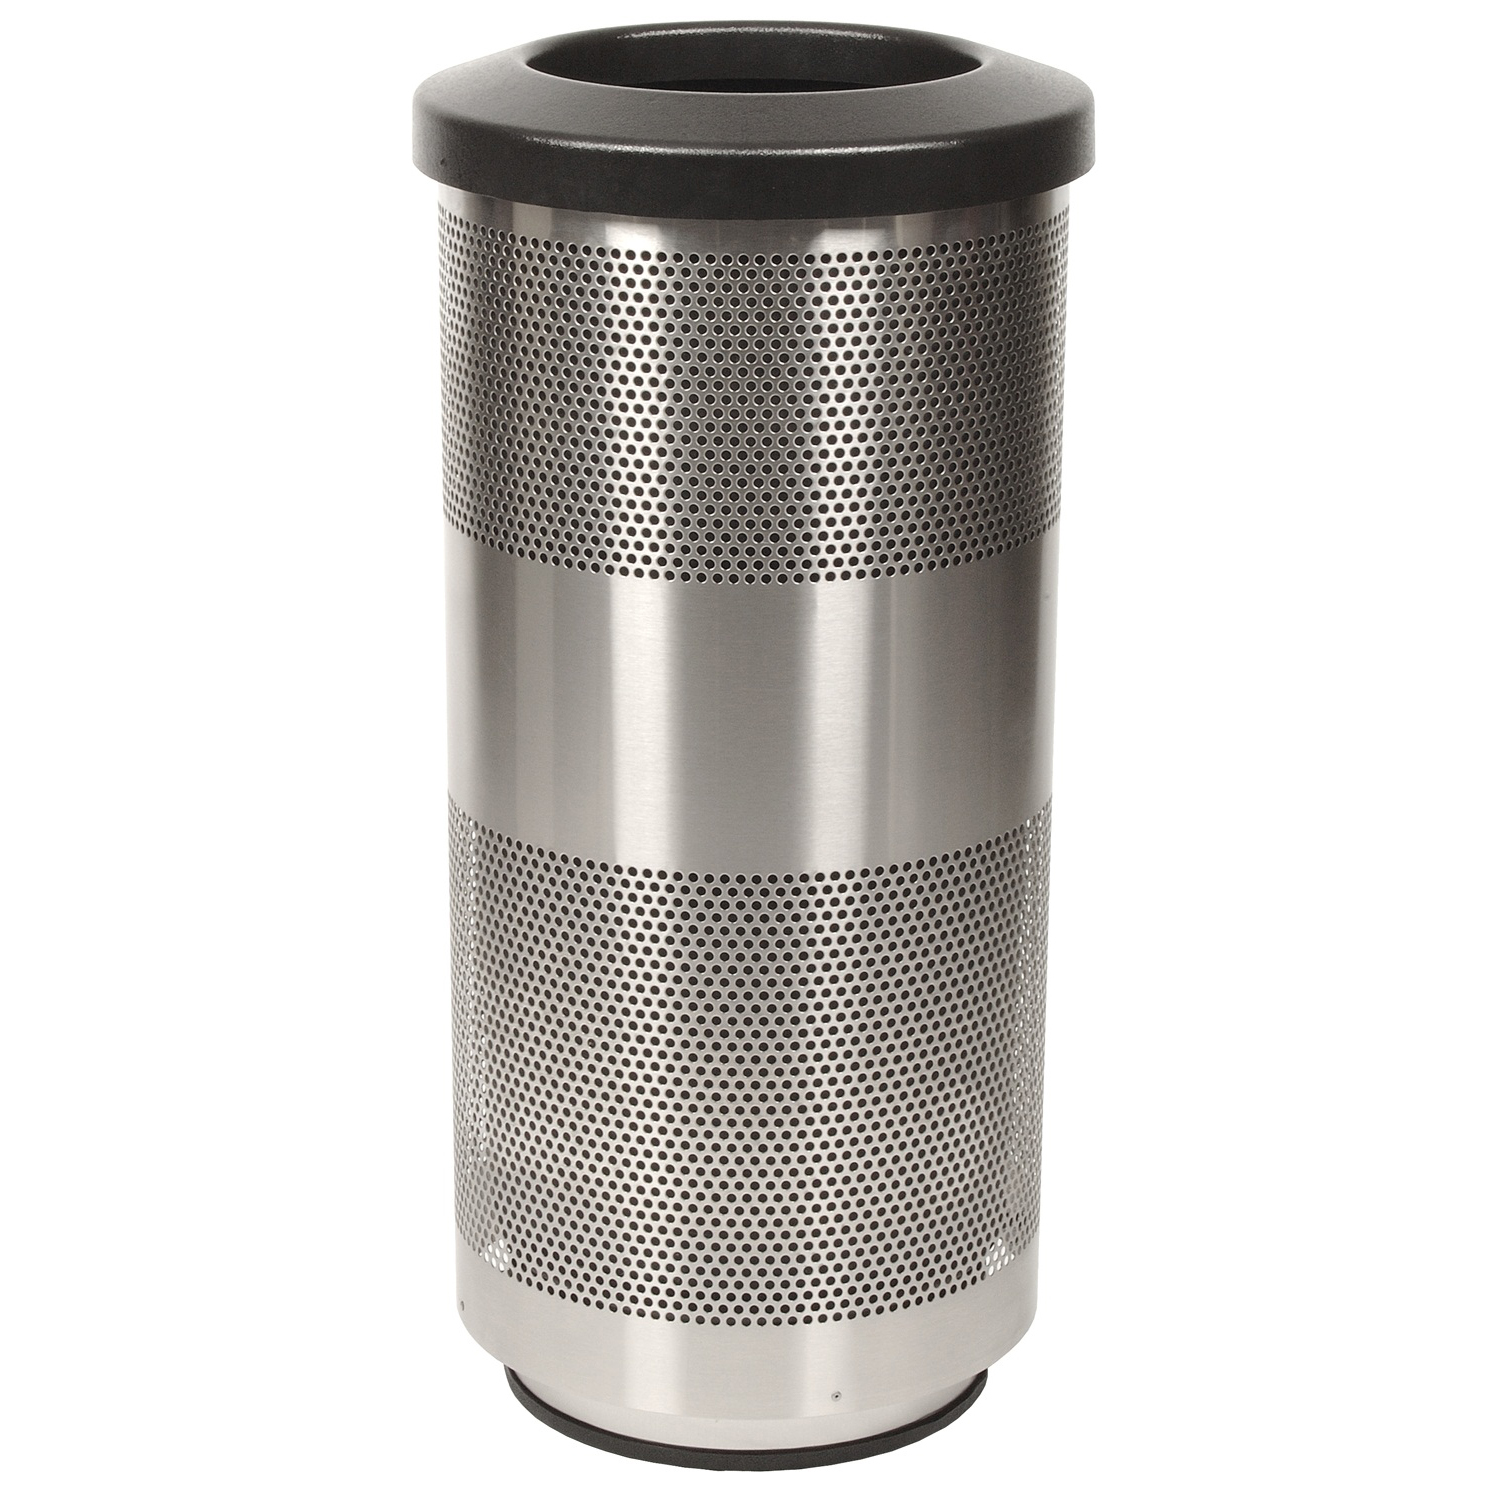 Elegant Trash Can Stadium 20 Gallon Perforated Waste Receptacle In Stainless Steel